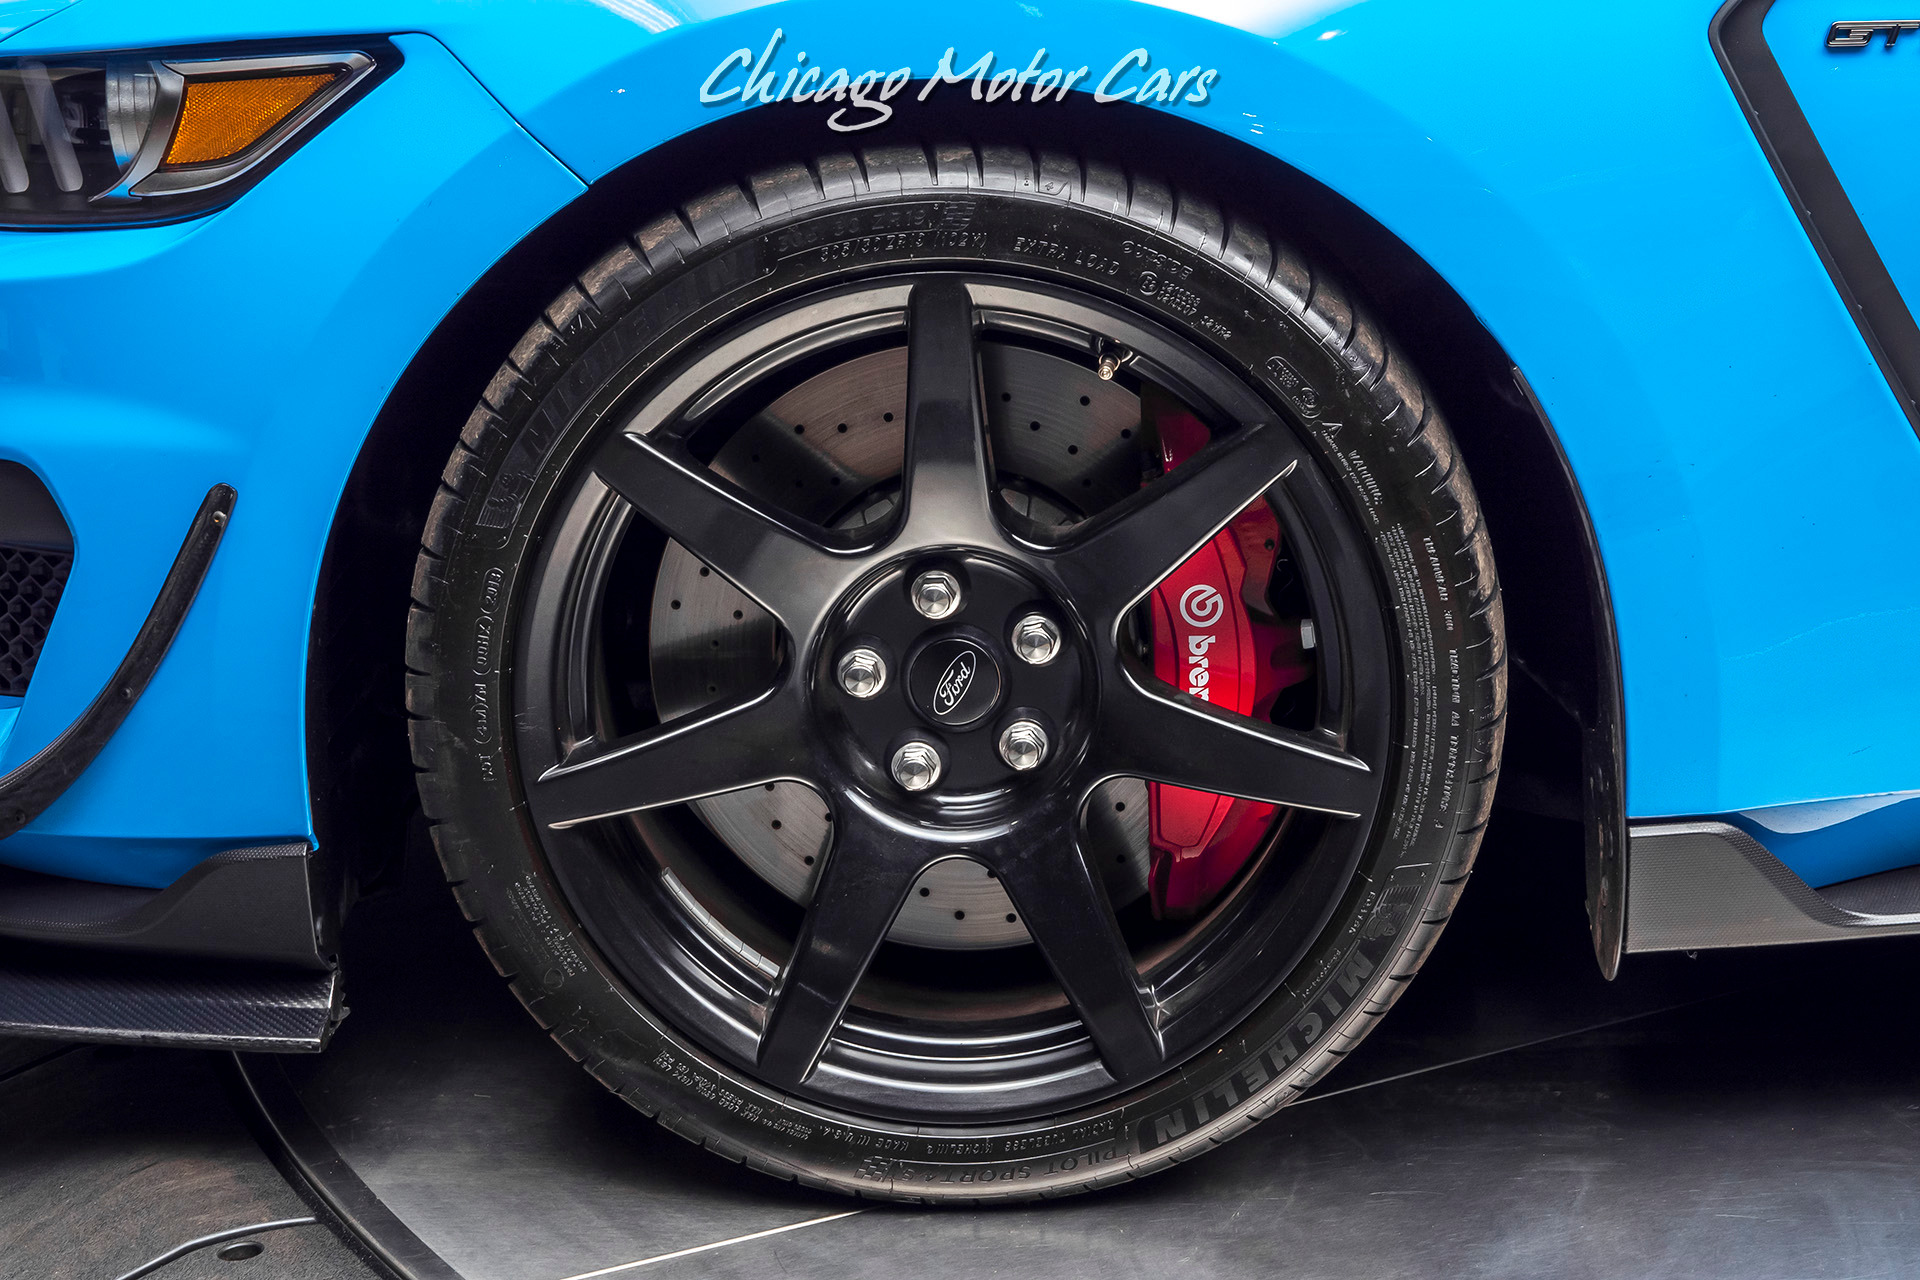 Used-2017-Ford-Mustang-Shelby-GT350R-Coupe-R-ELECTRONICS-PACKAGE-TASTEFUL-UPGRADES